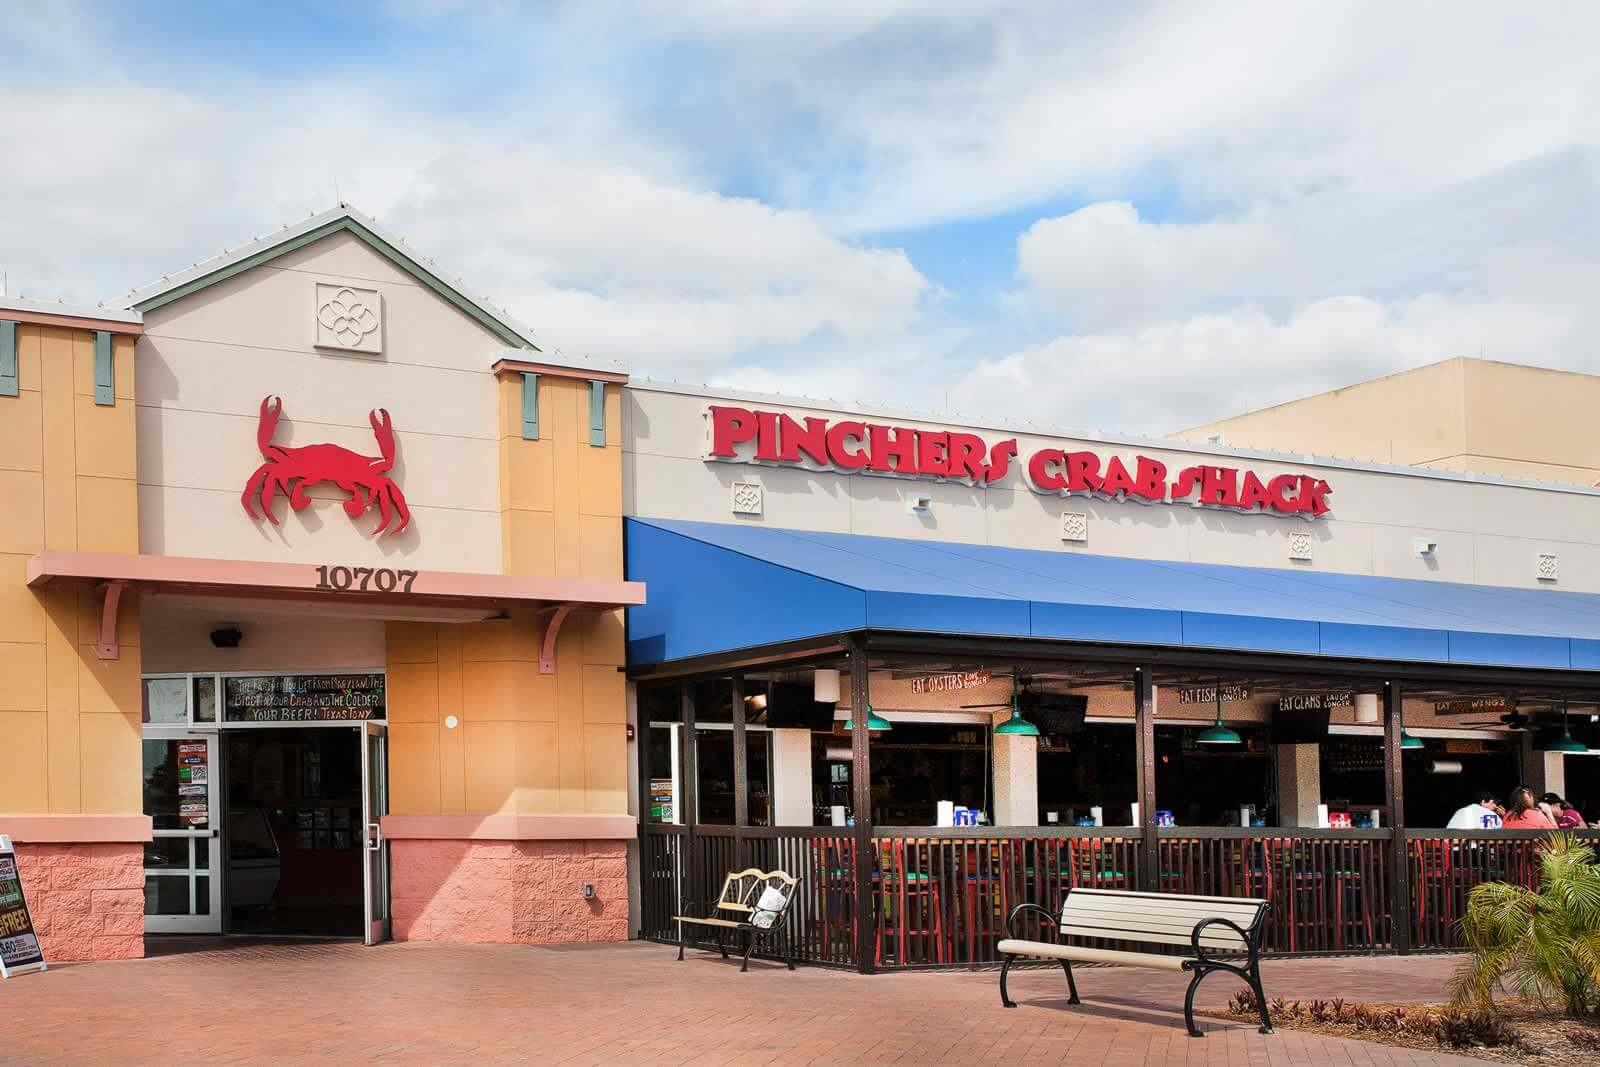 Pinchers Crab Shack Wbrc Architects Engineers